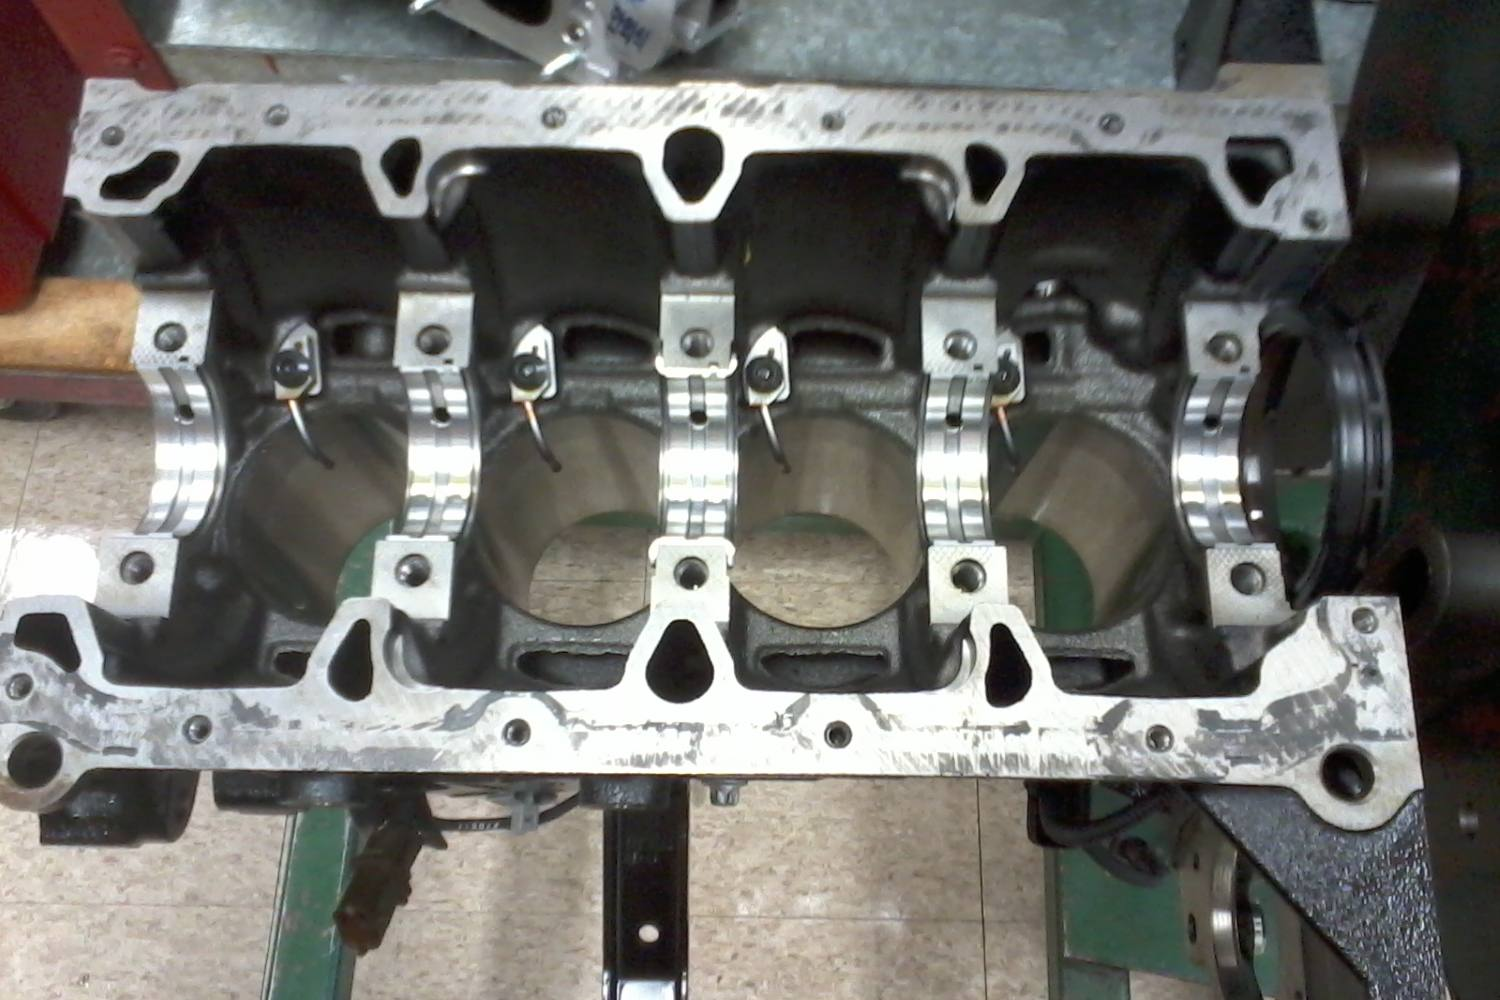 Engine Block With Crankshaft Removed And Bearings Exposed